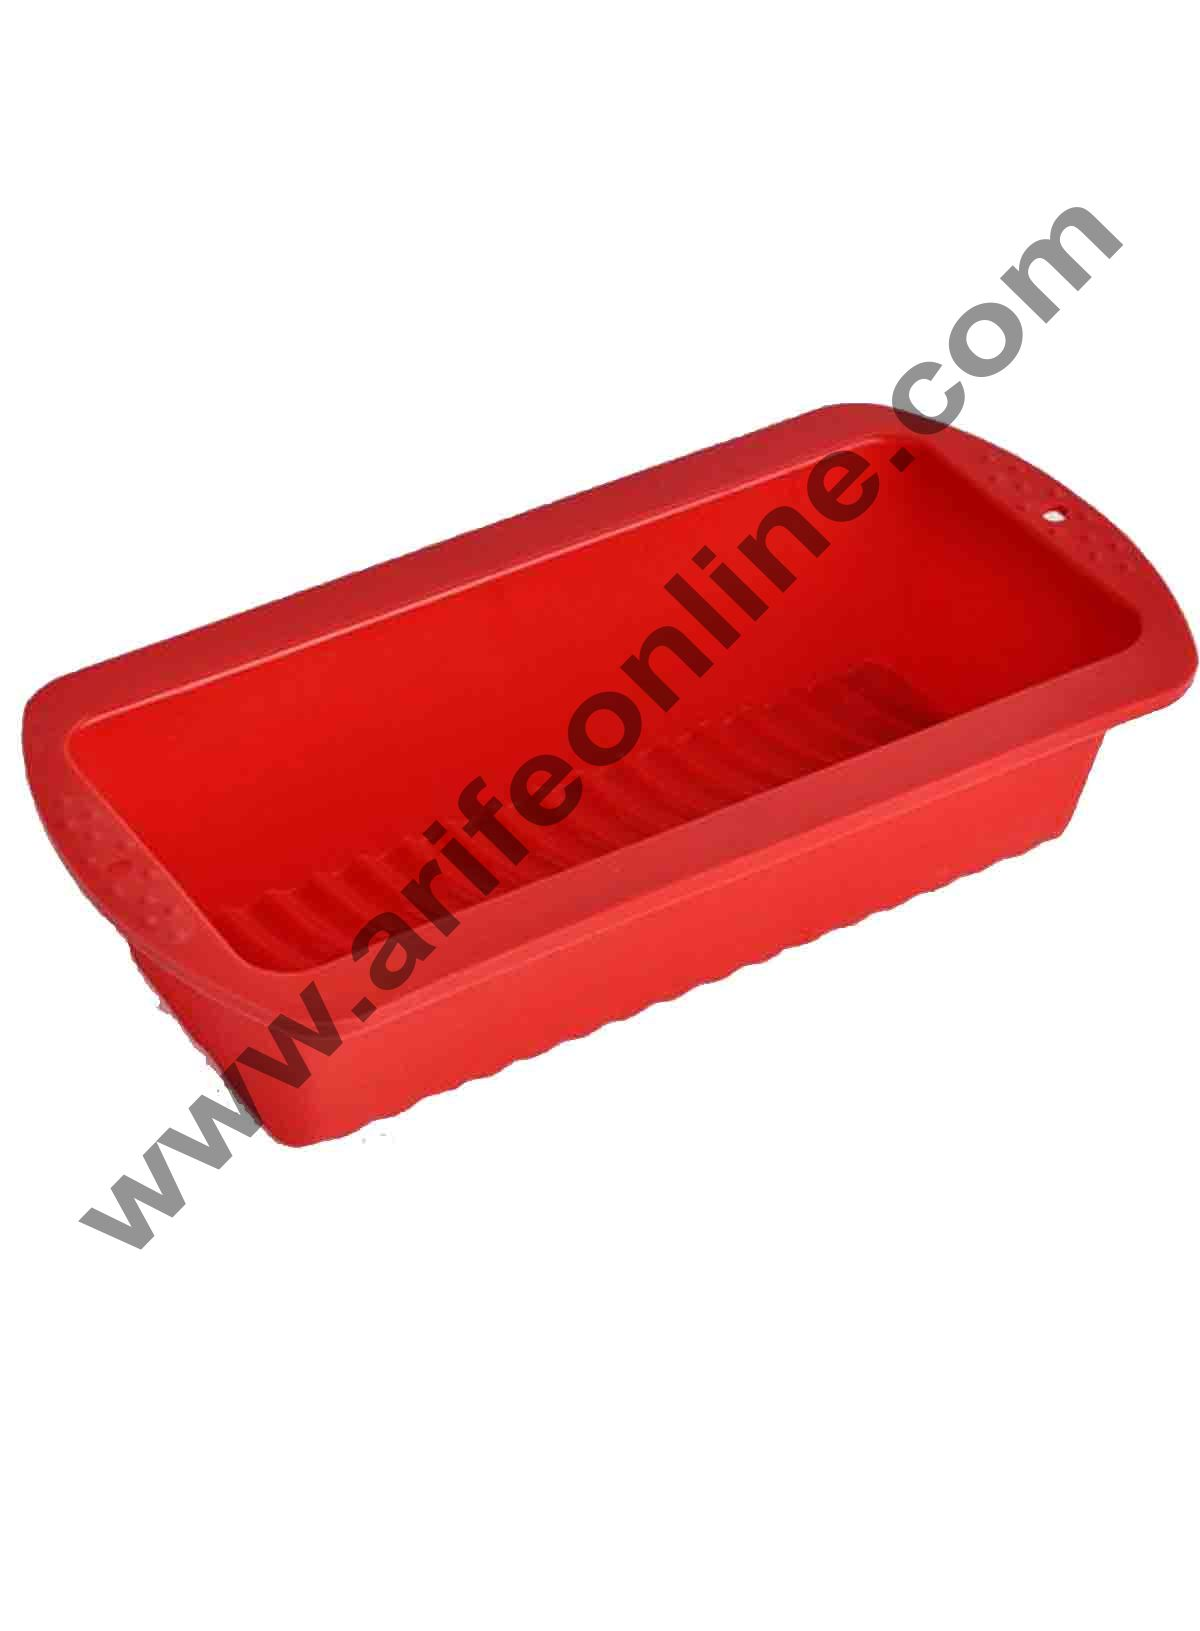 Cake Decor Bread Mould Silicone Bread Loaf Bakeware Pan Mould BakeWare-Orange